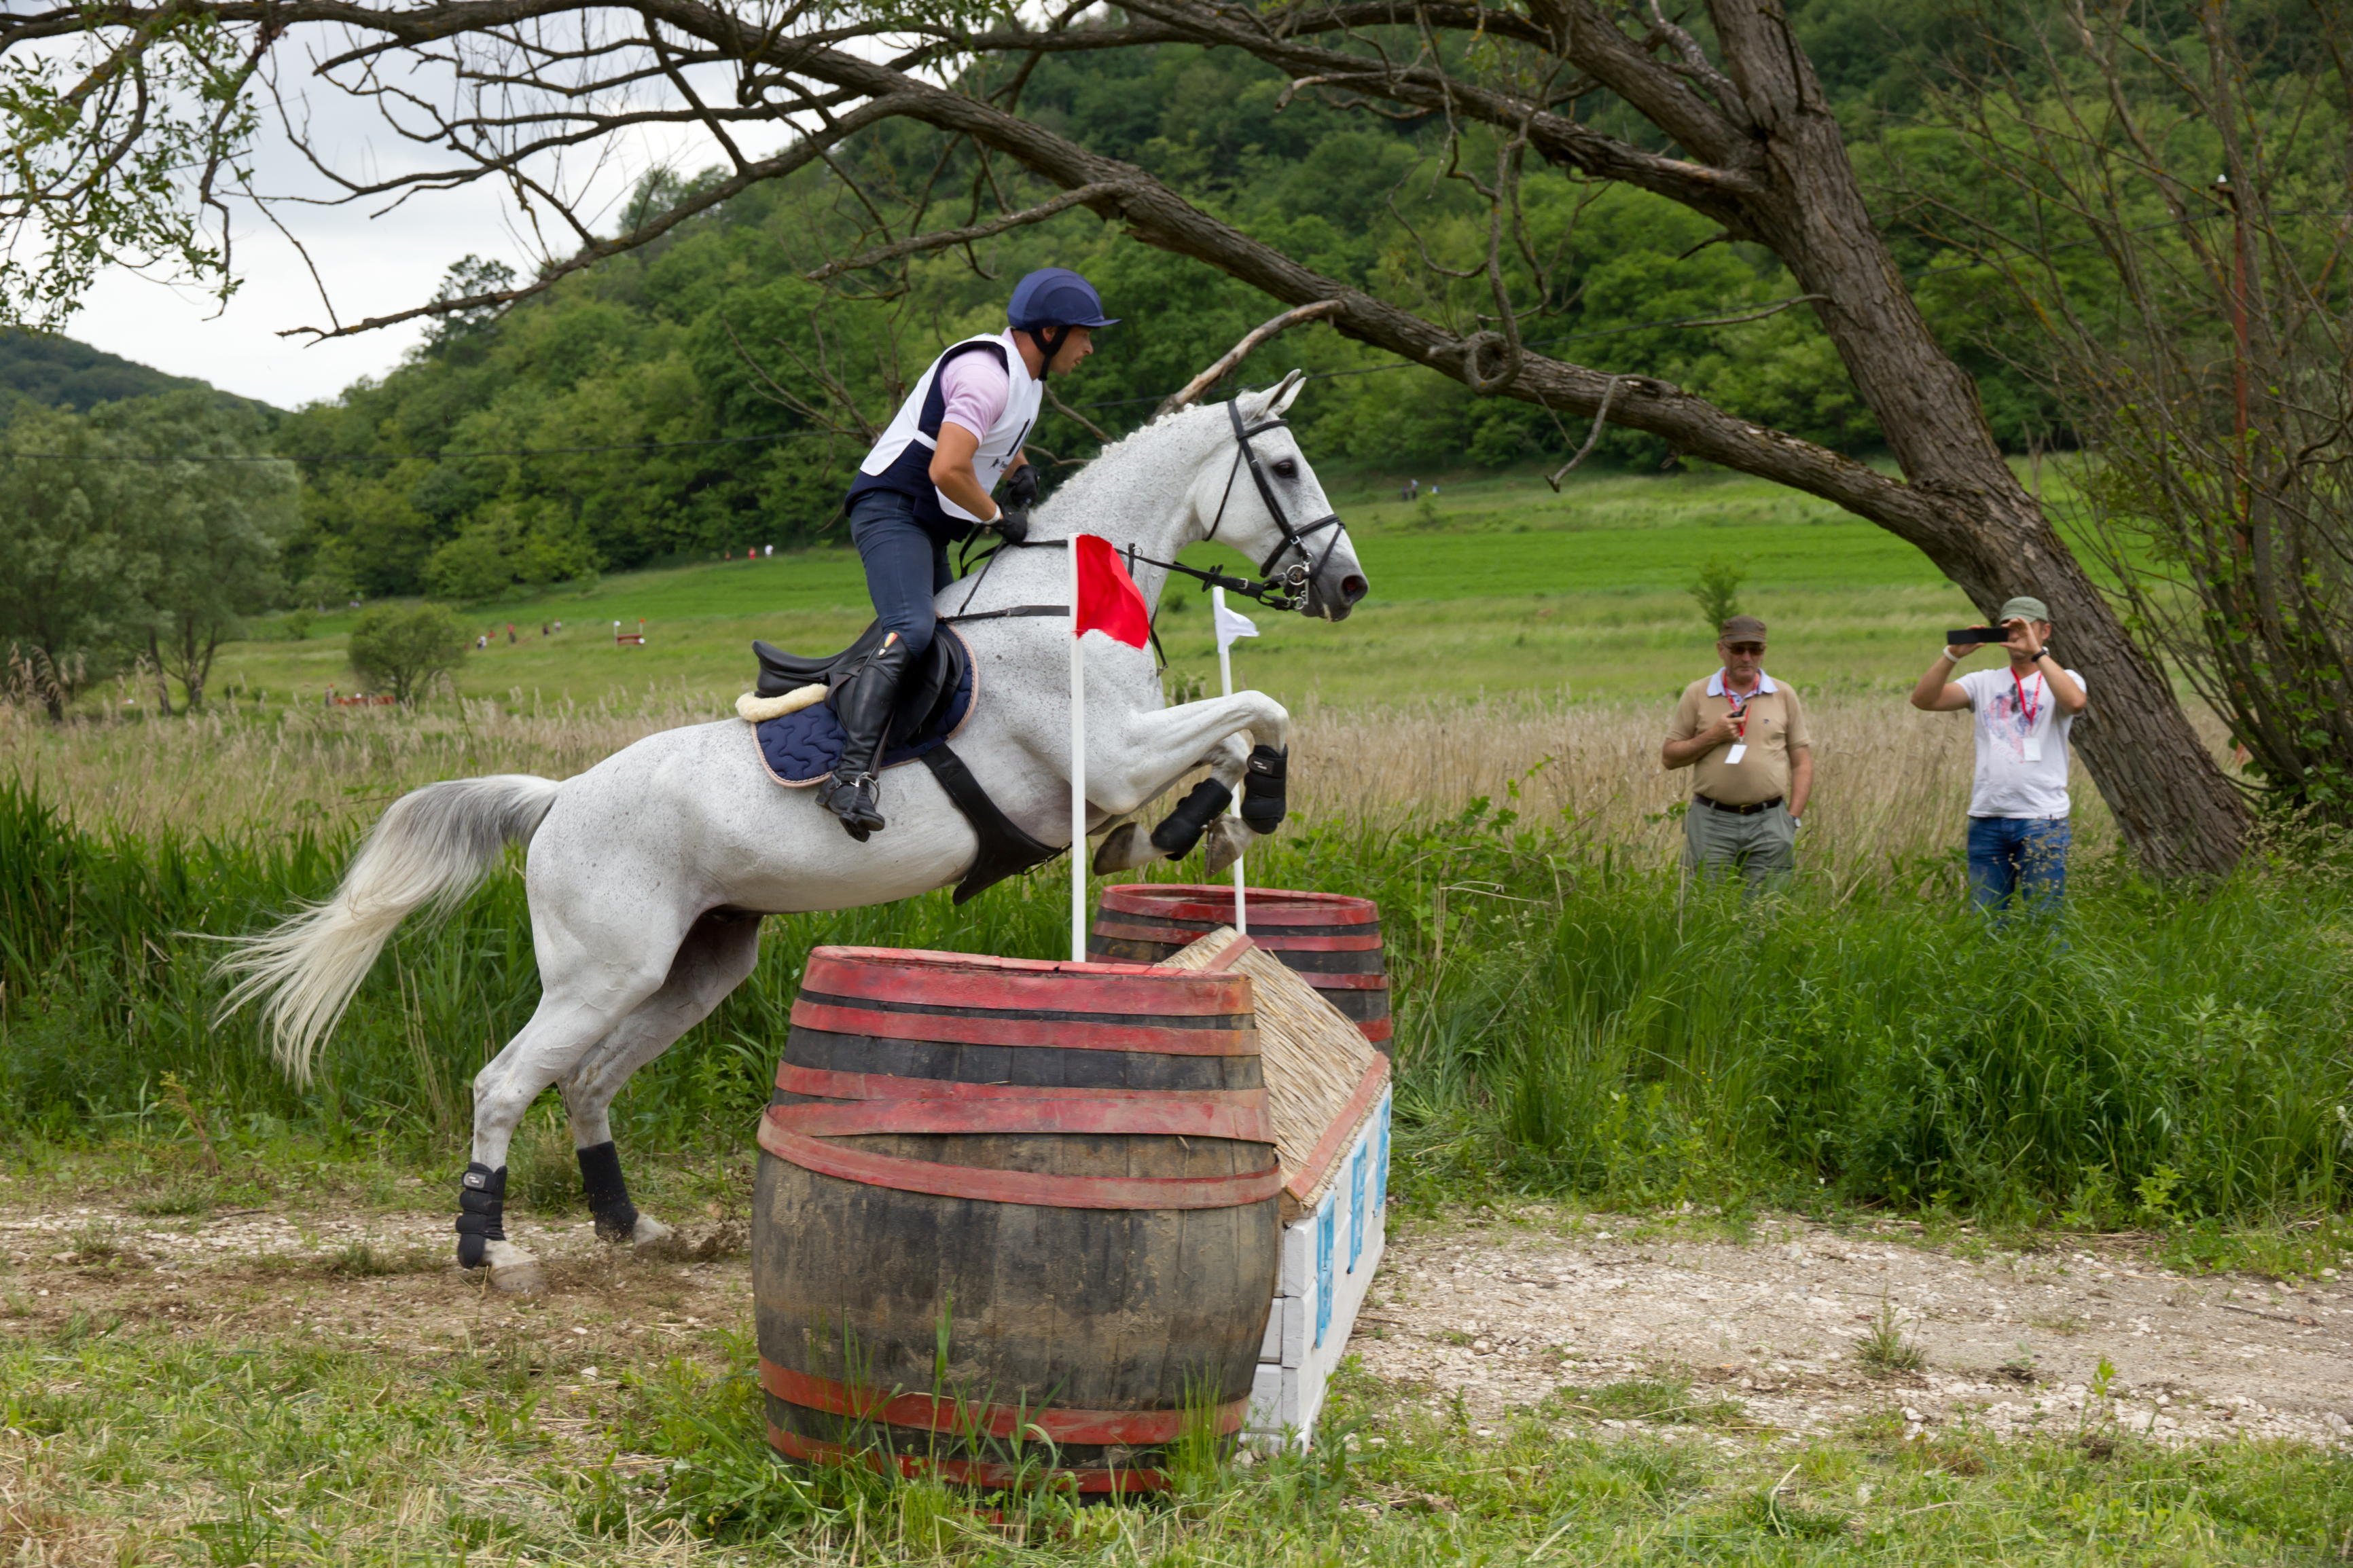 eventing-discussion-153-what-does-this-rider-need-to-work-on